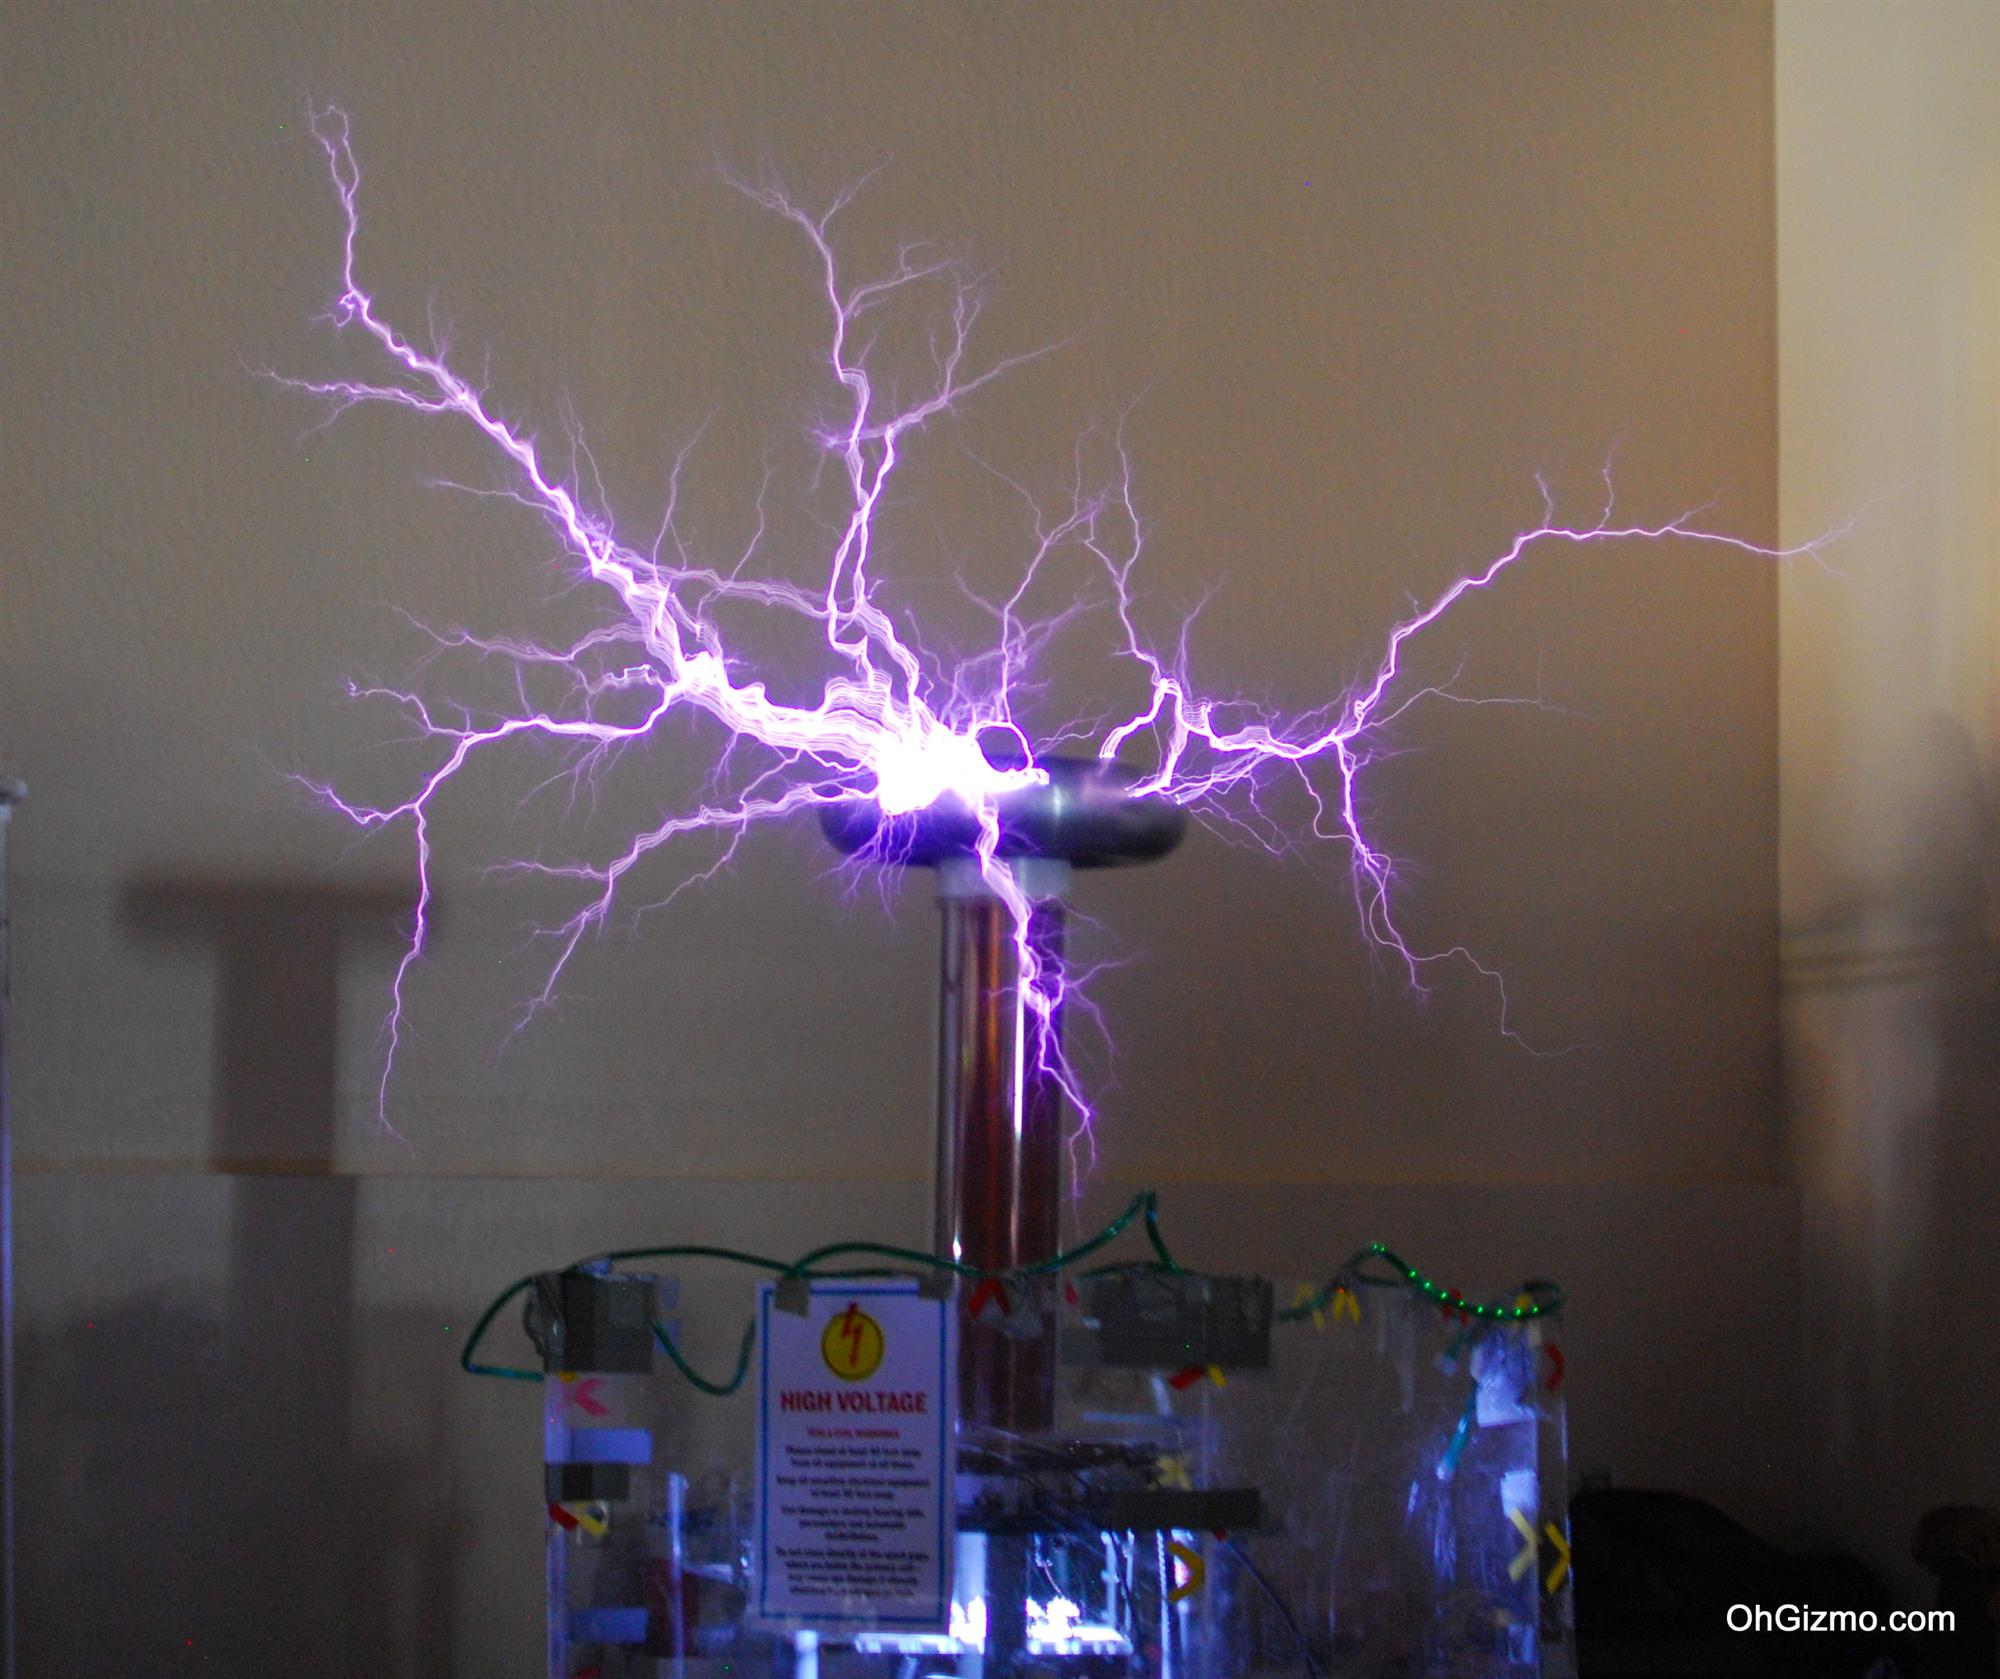 Happy Birthday Tesla 2012 in addition Maker Faire 2009 Tesla Coils furthermore Nikola Tesla 5408878 together with Nikola Tesla Y Sus Inventos also Nikola Tesla. on tesla coil radio